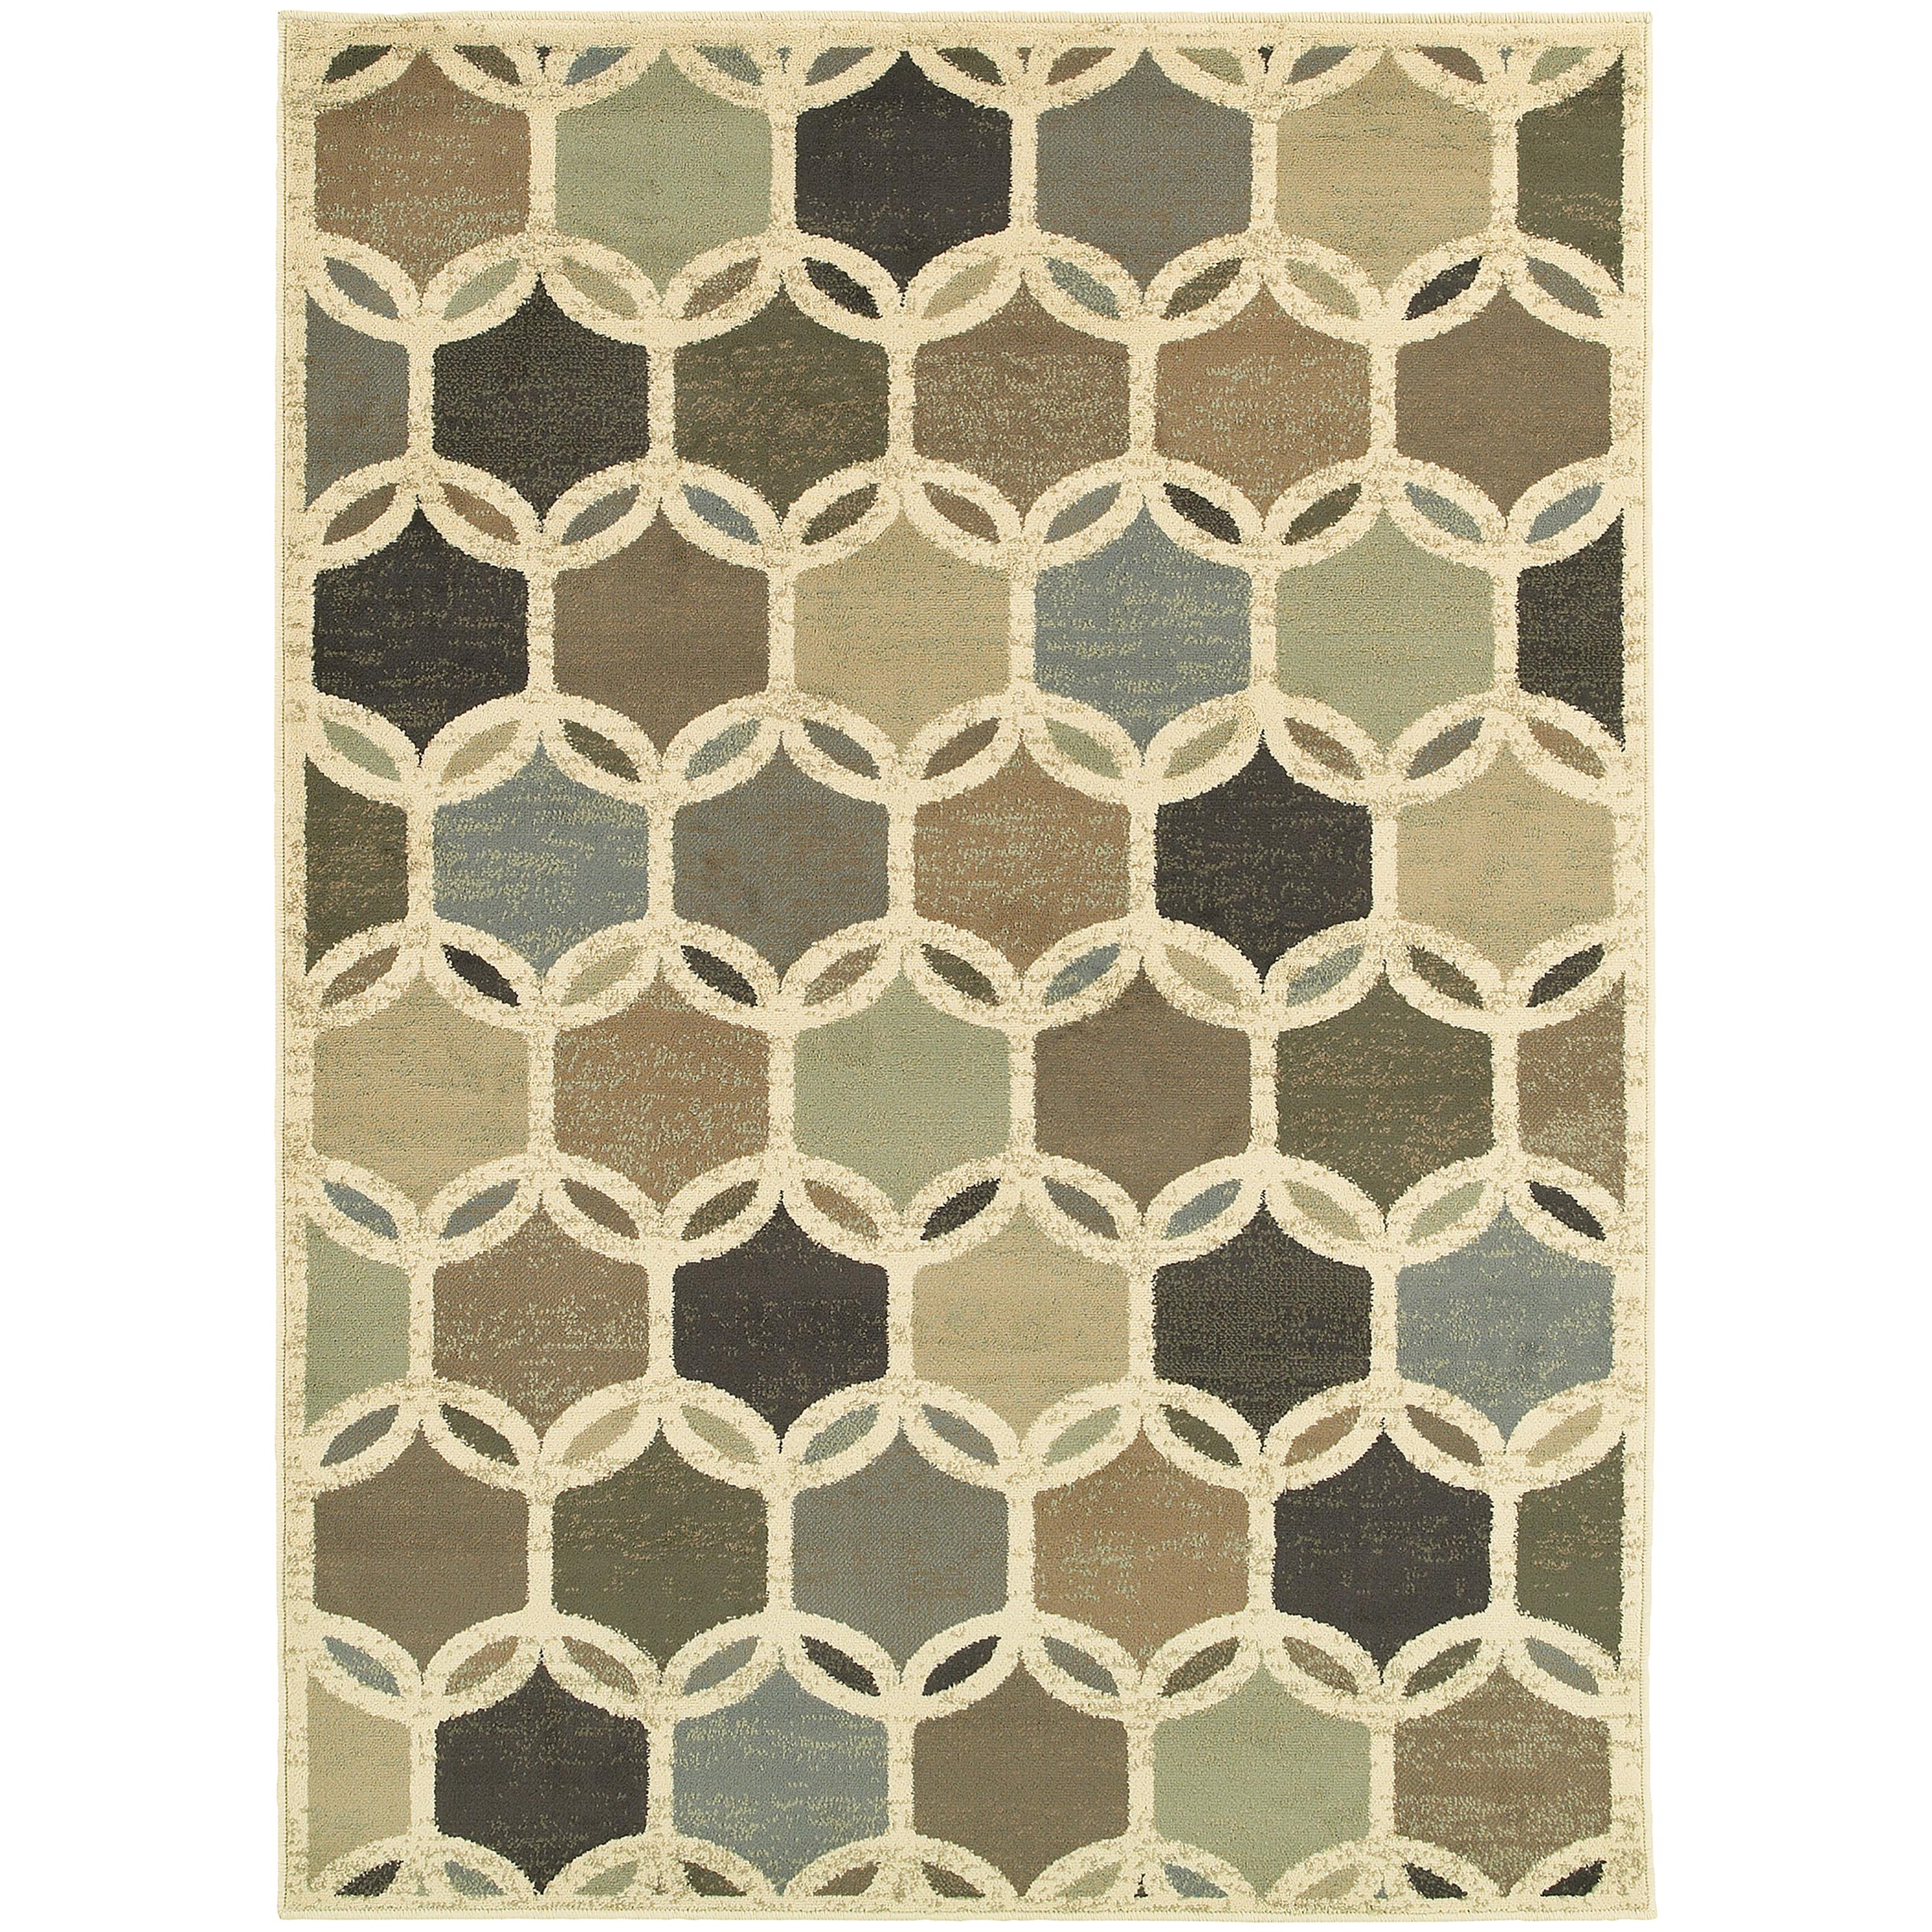 Brentwood 5x7 Rug by Oriental Weavers at Red Knot